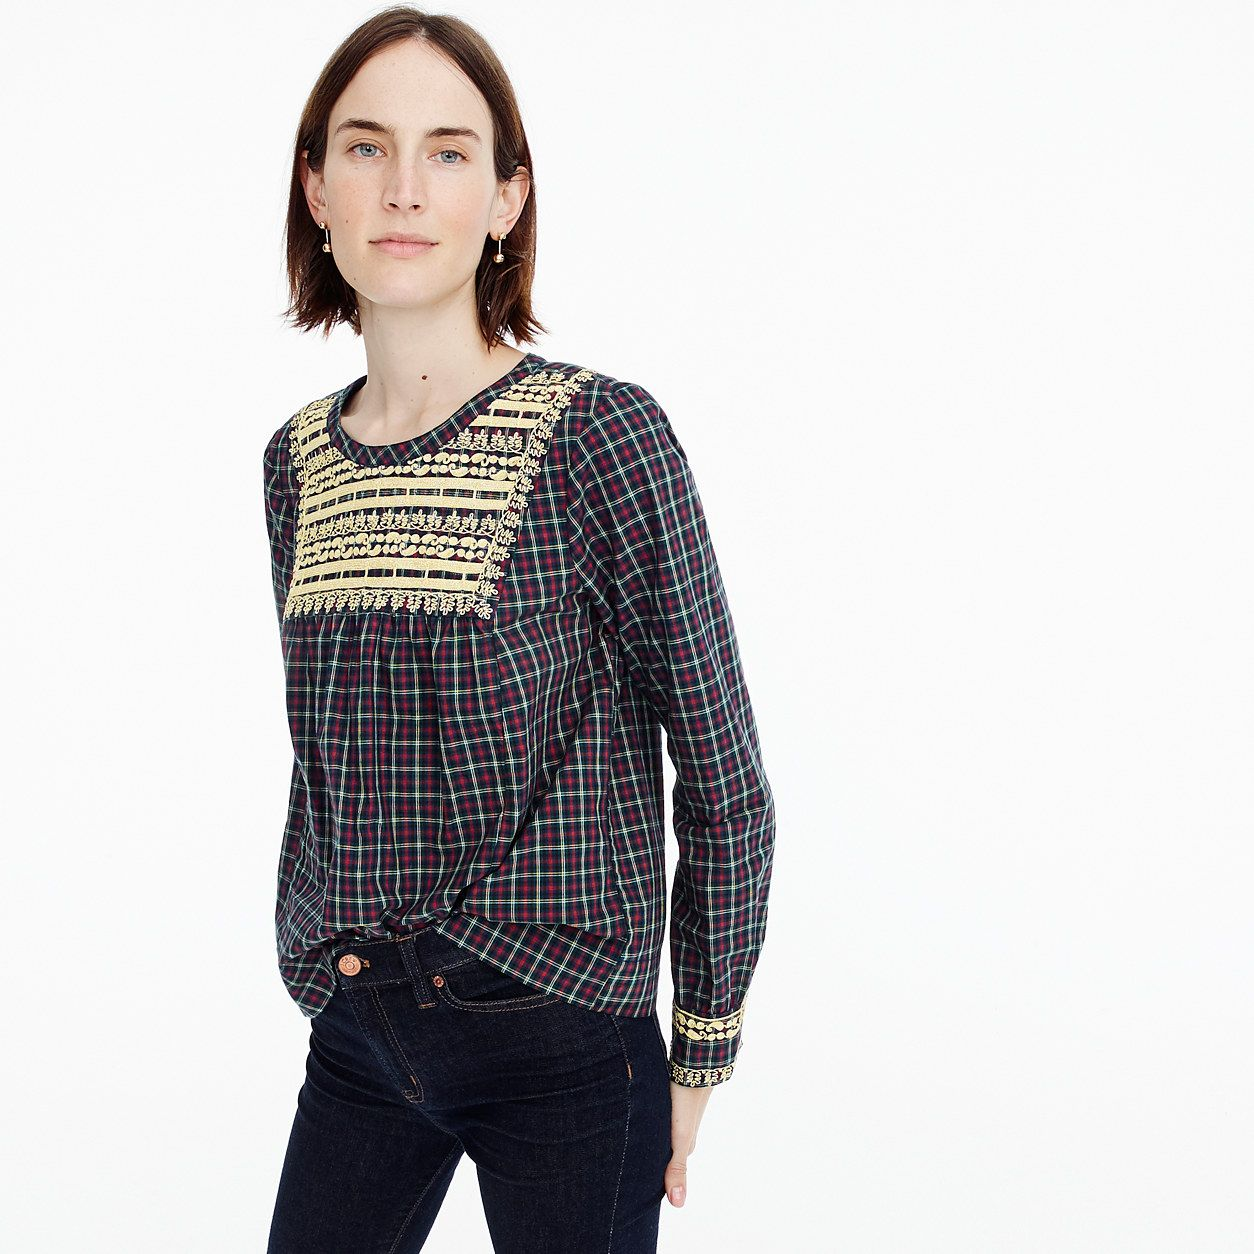 J.Crew Womens Petite Embroidered Peasant Top In Plaid (Size XXS Petite) 32ef6bca31